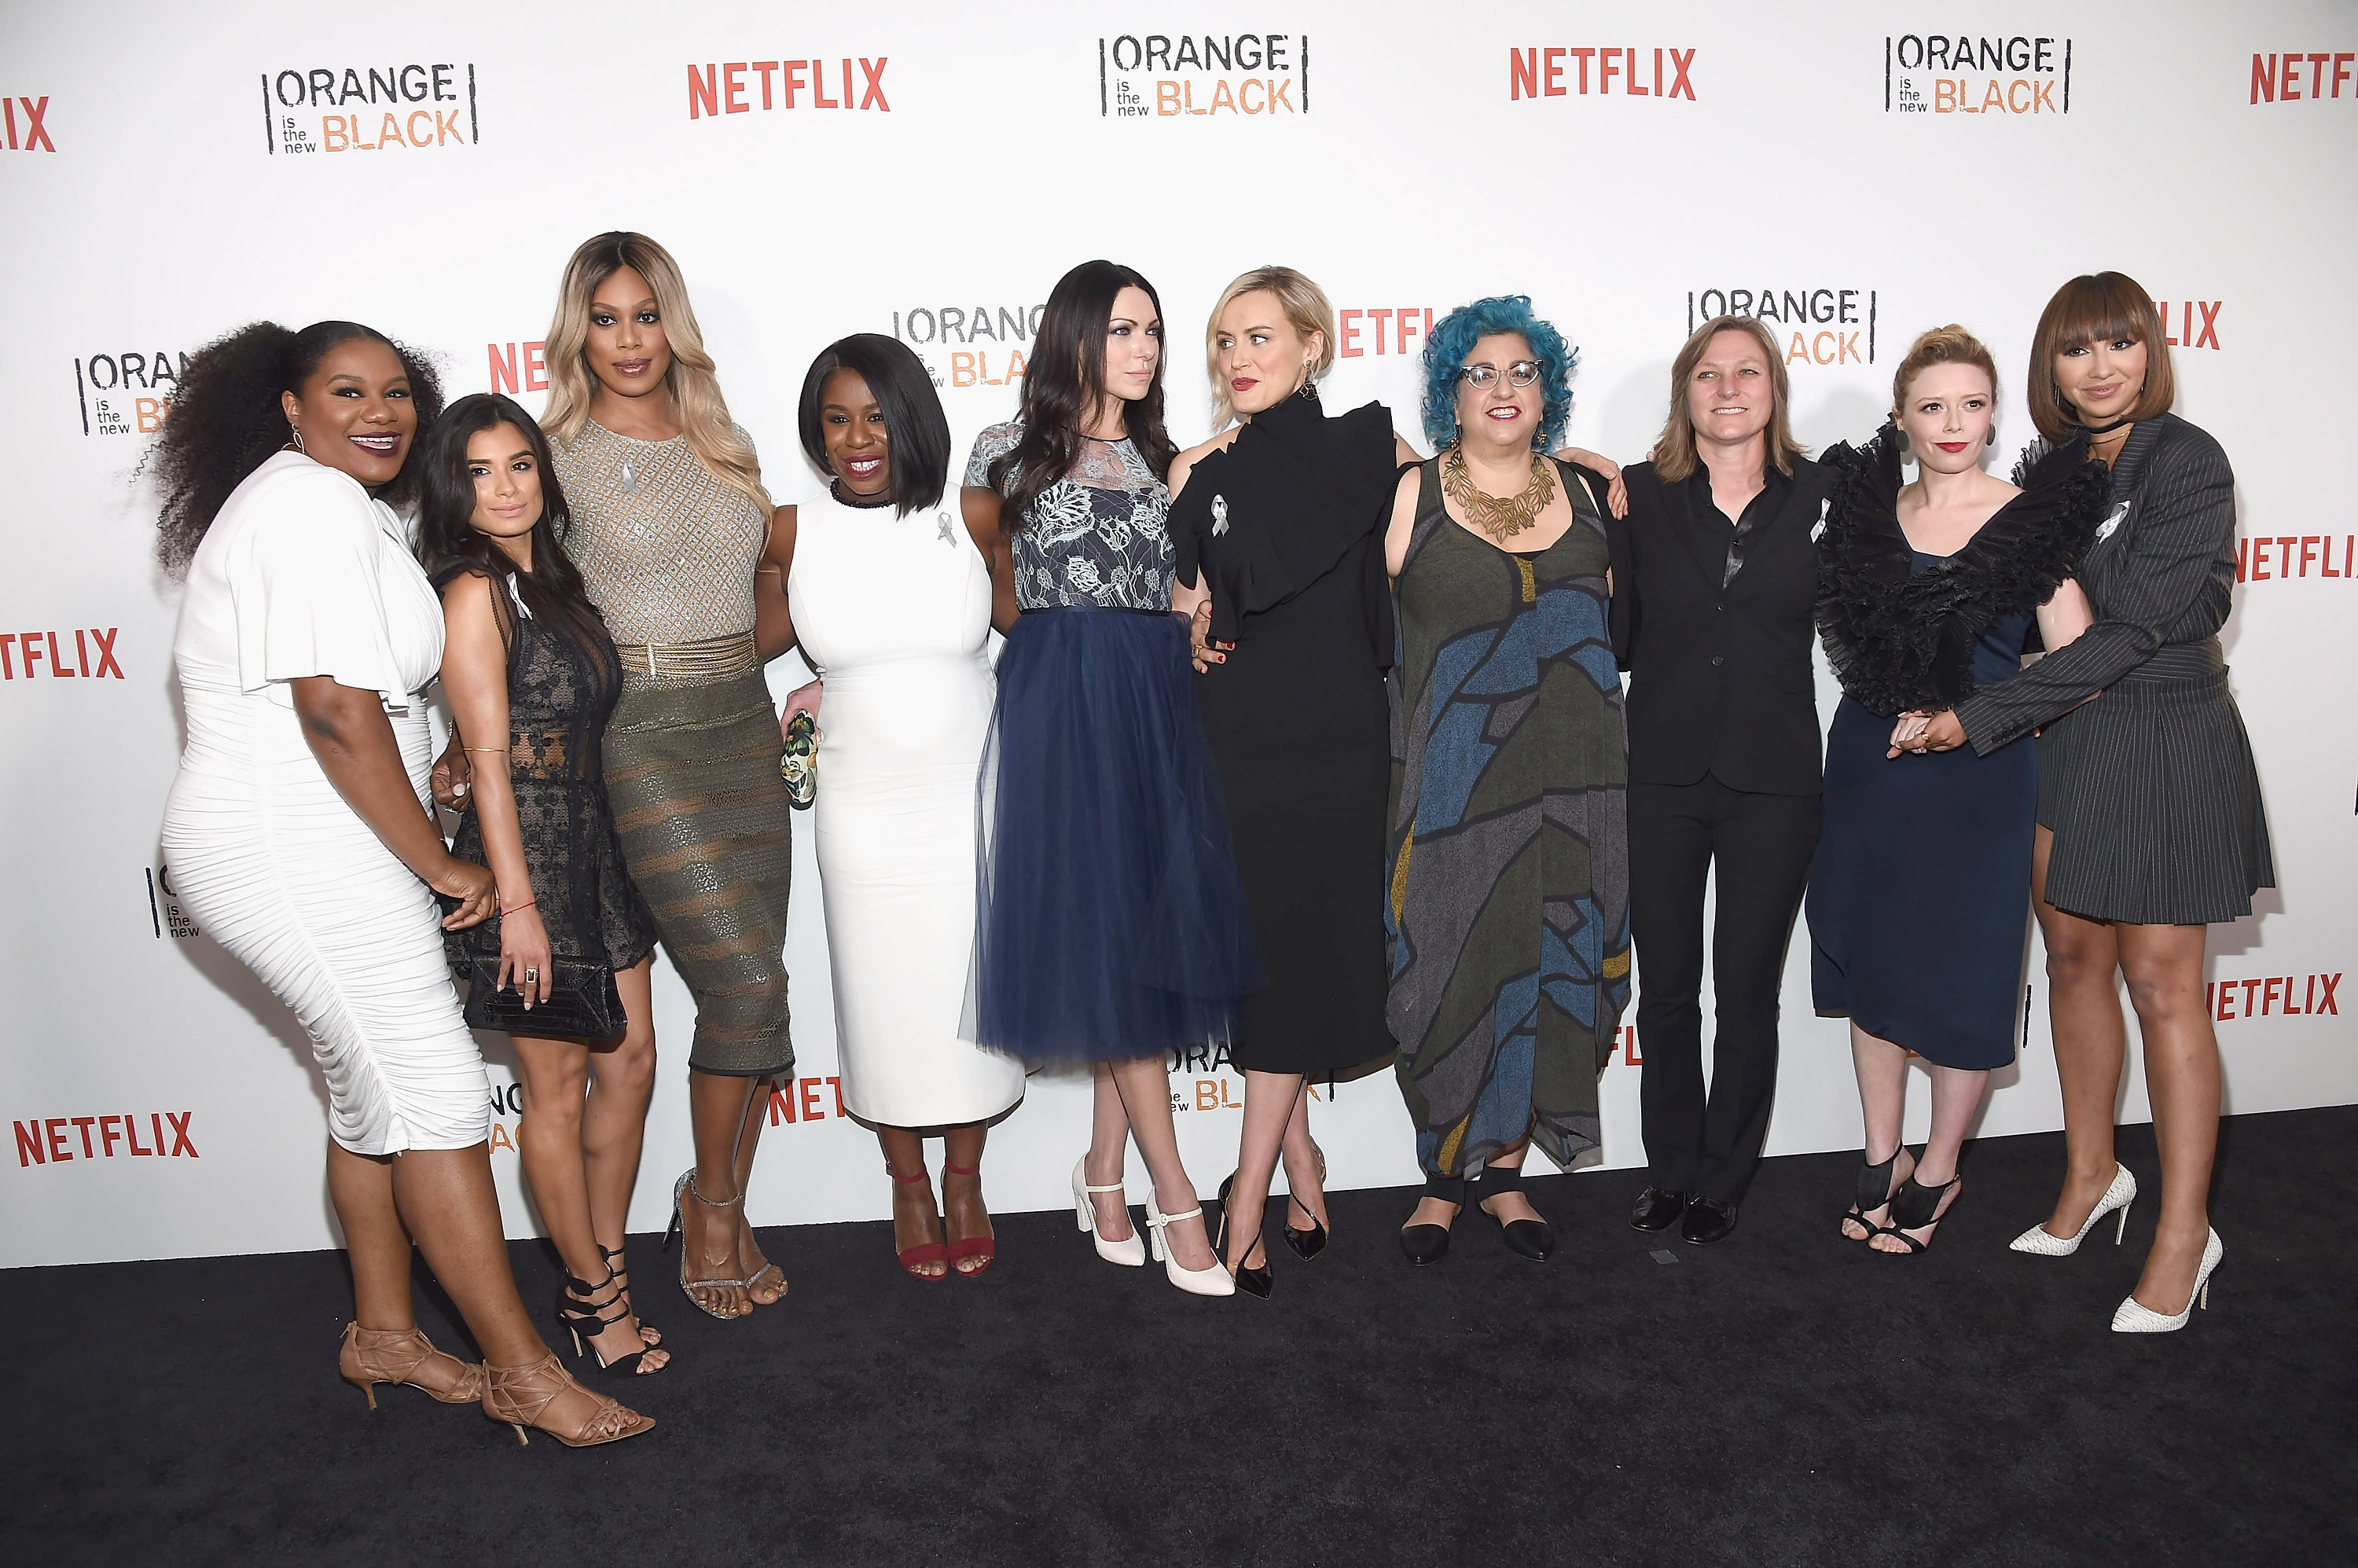 The cast of  Orange Is The New Black   attends the Netflix series' New York City premiere  on June 16, 2016.